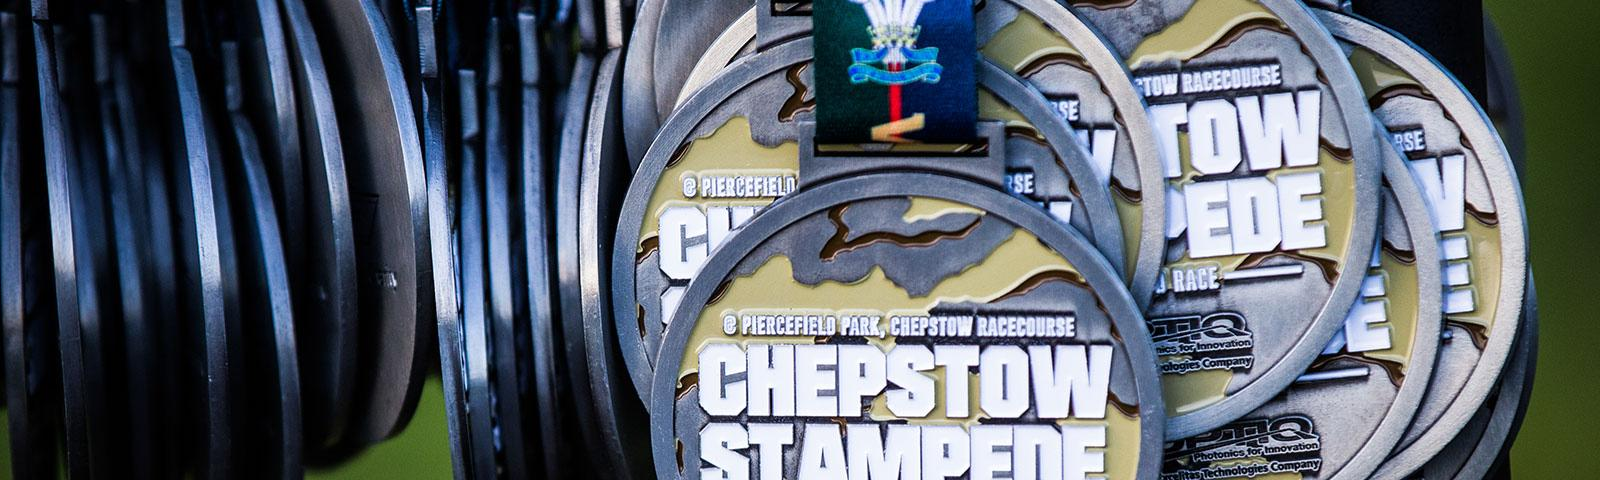 Chepstow Stampede Competitor Medals.